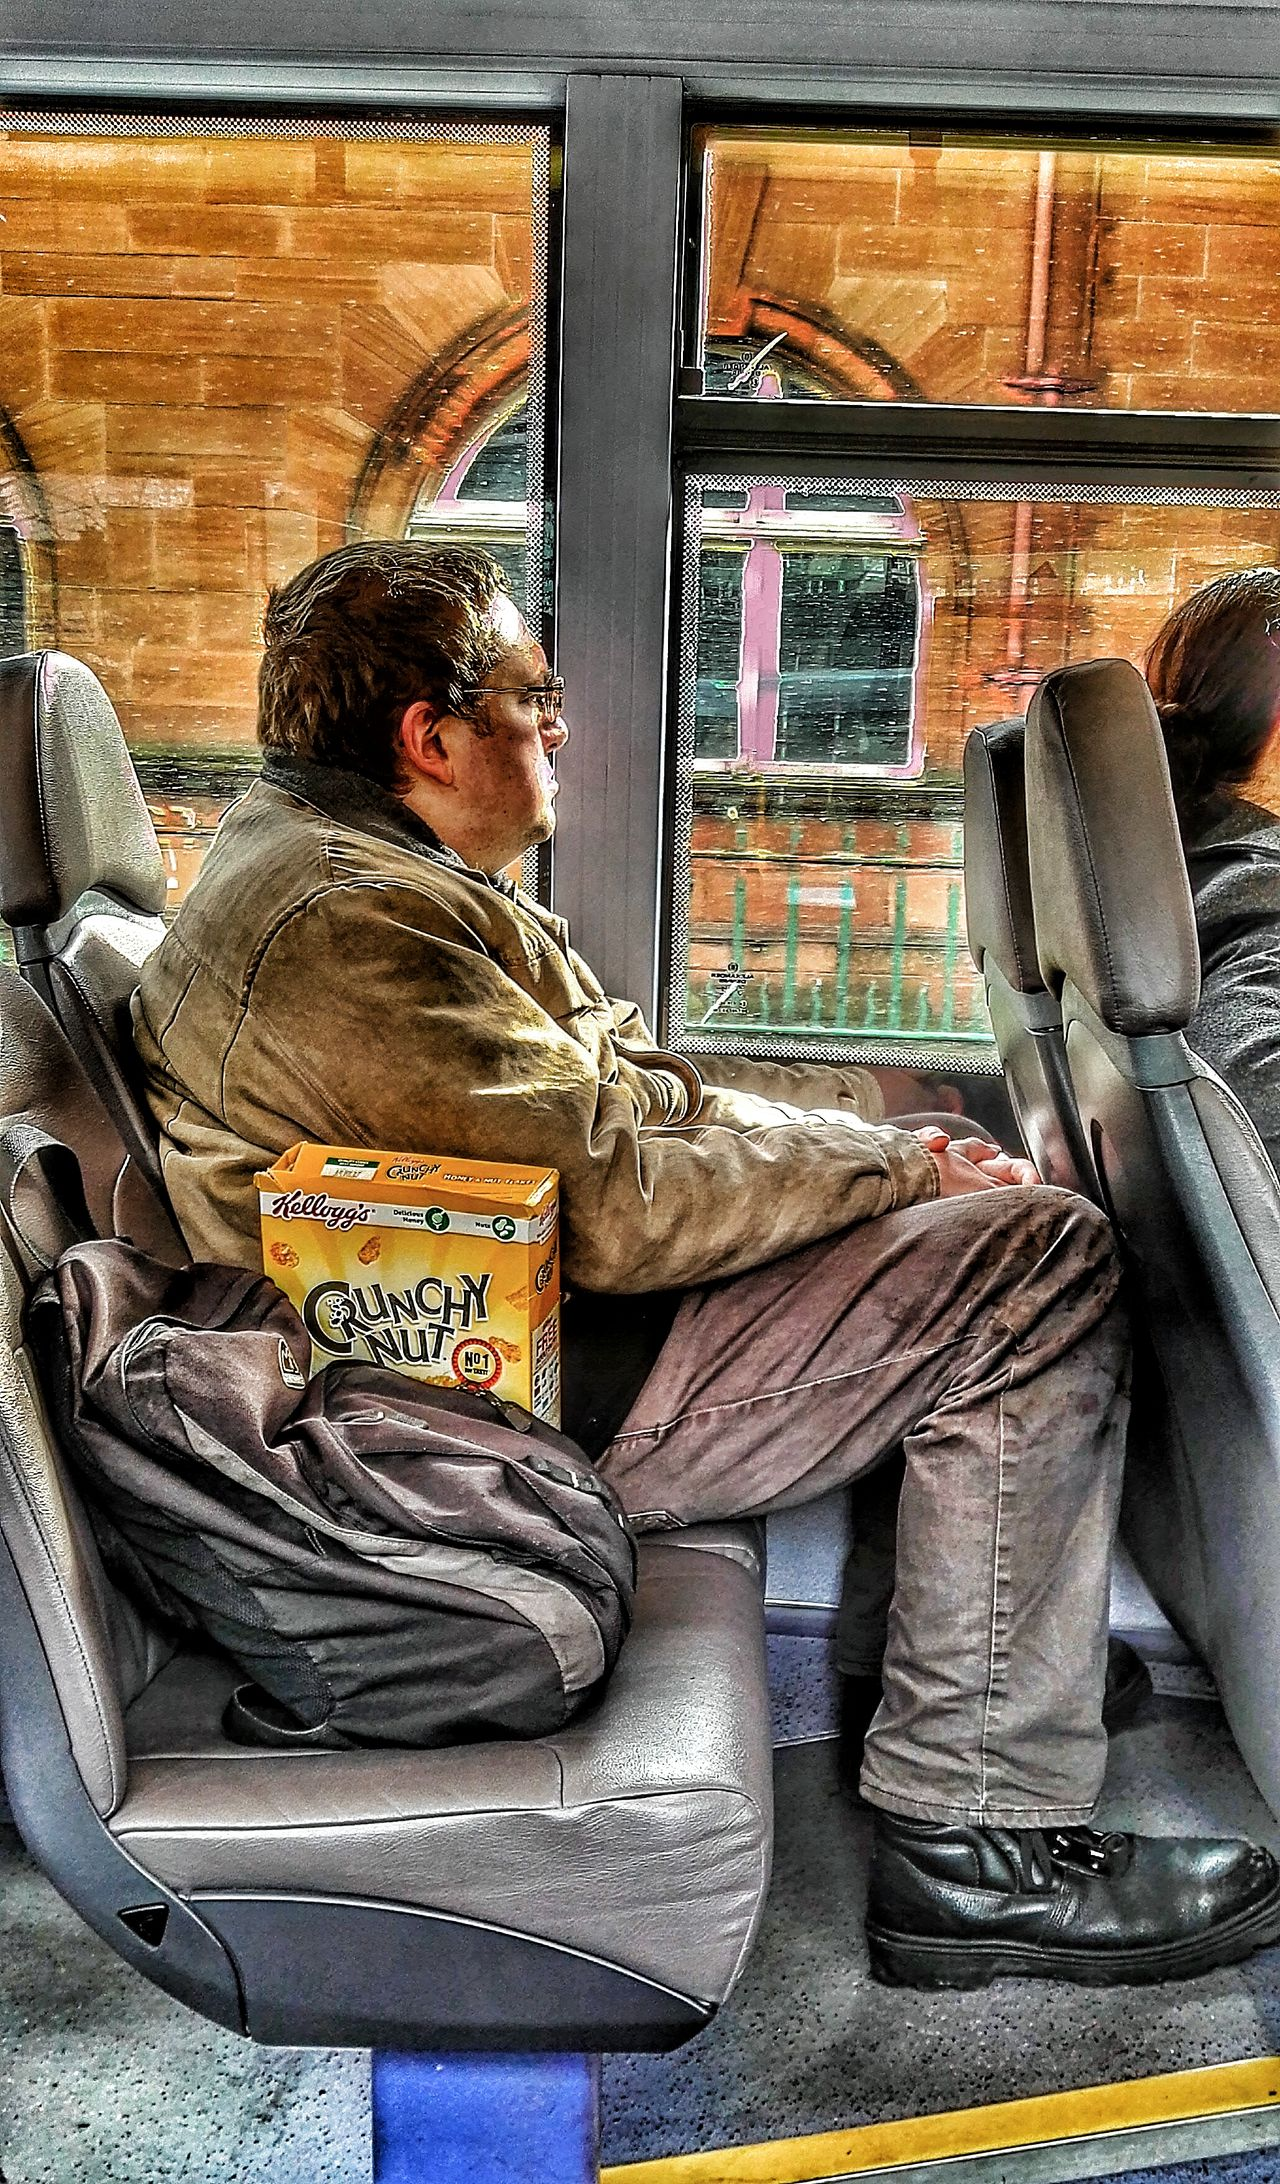 People Watching On The Bus Crunchy Nut